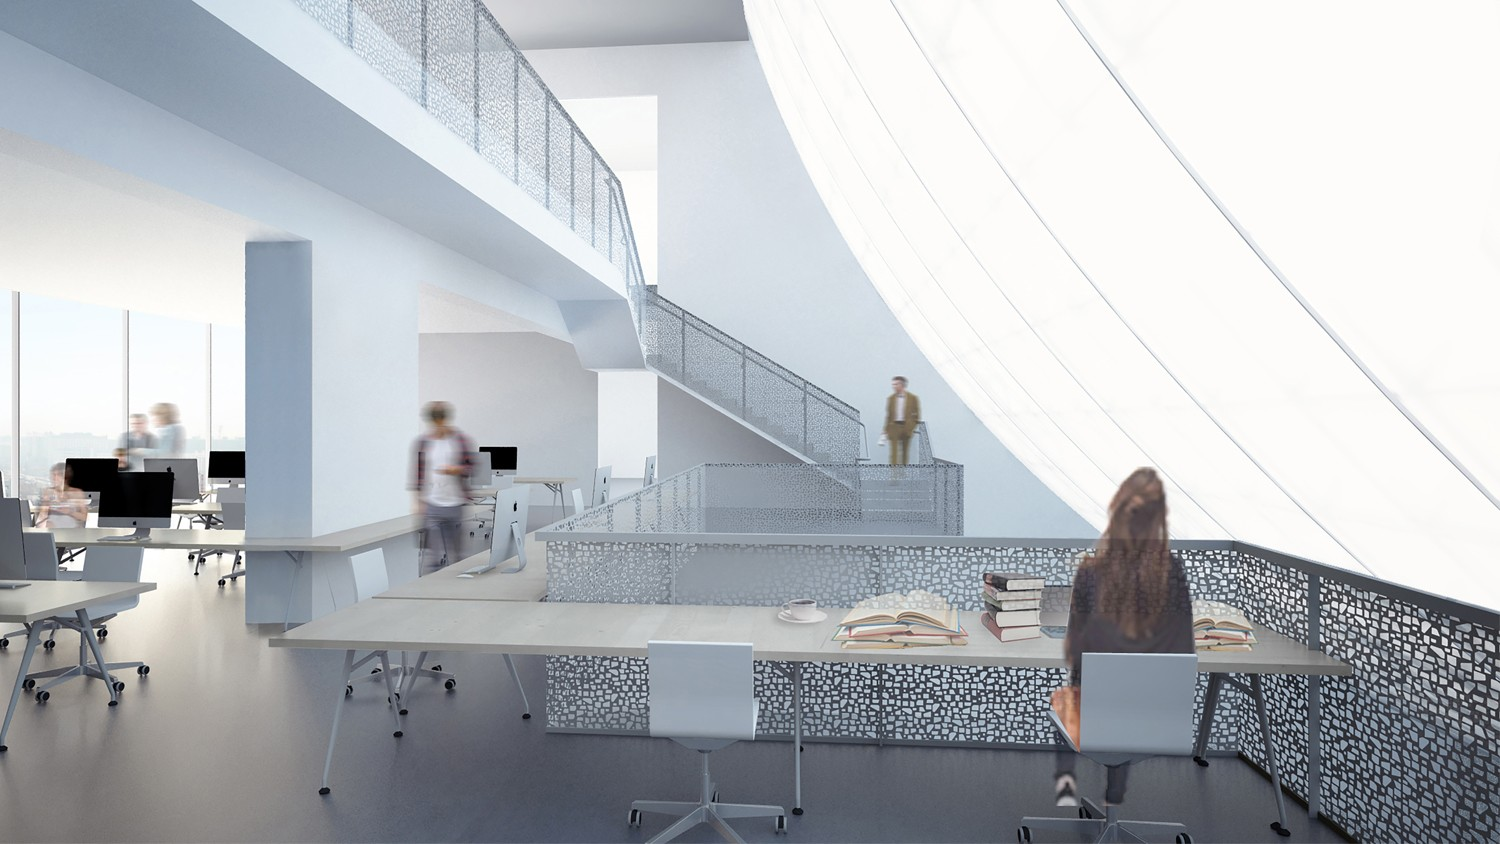 https://s3.us-east-2.amazonaws.com/steven-holl/uploads/projects/project-images/coworking.jpg